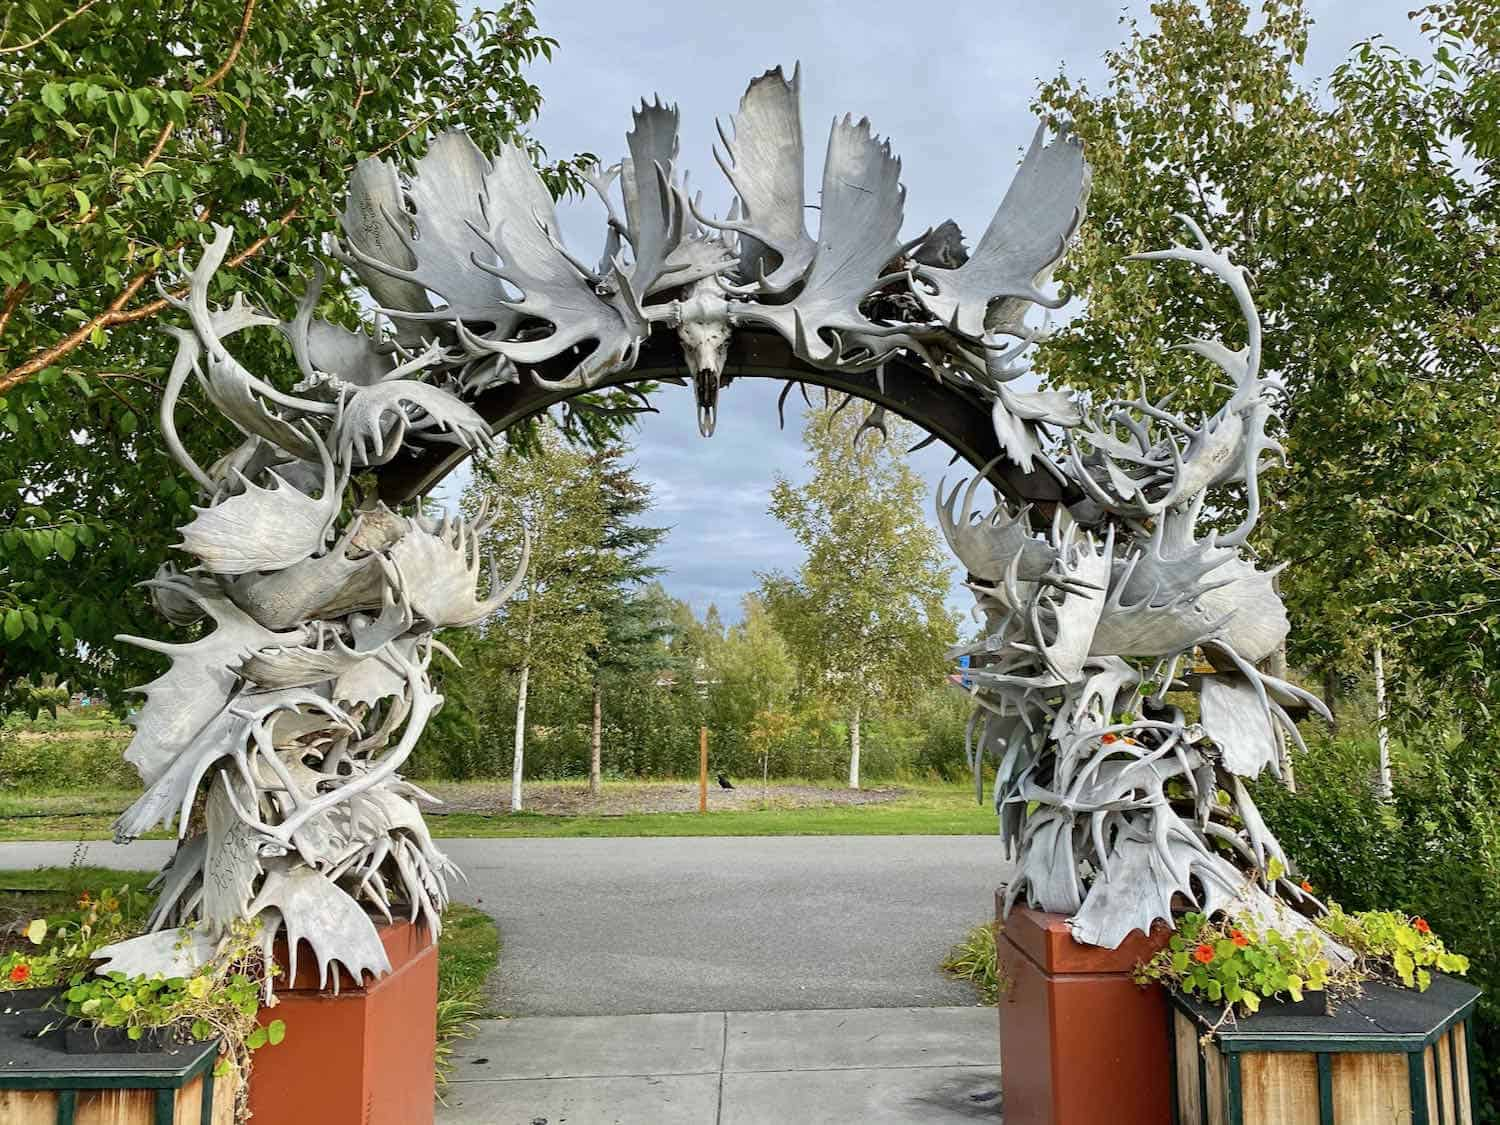 Arch made of moose and caribou antlers in Fairbanks, Alaska. Photo by Debi Lander